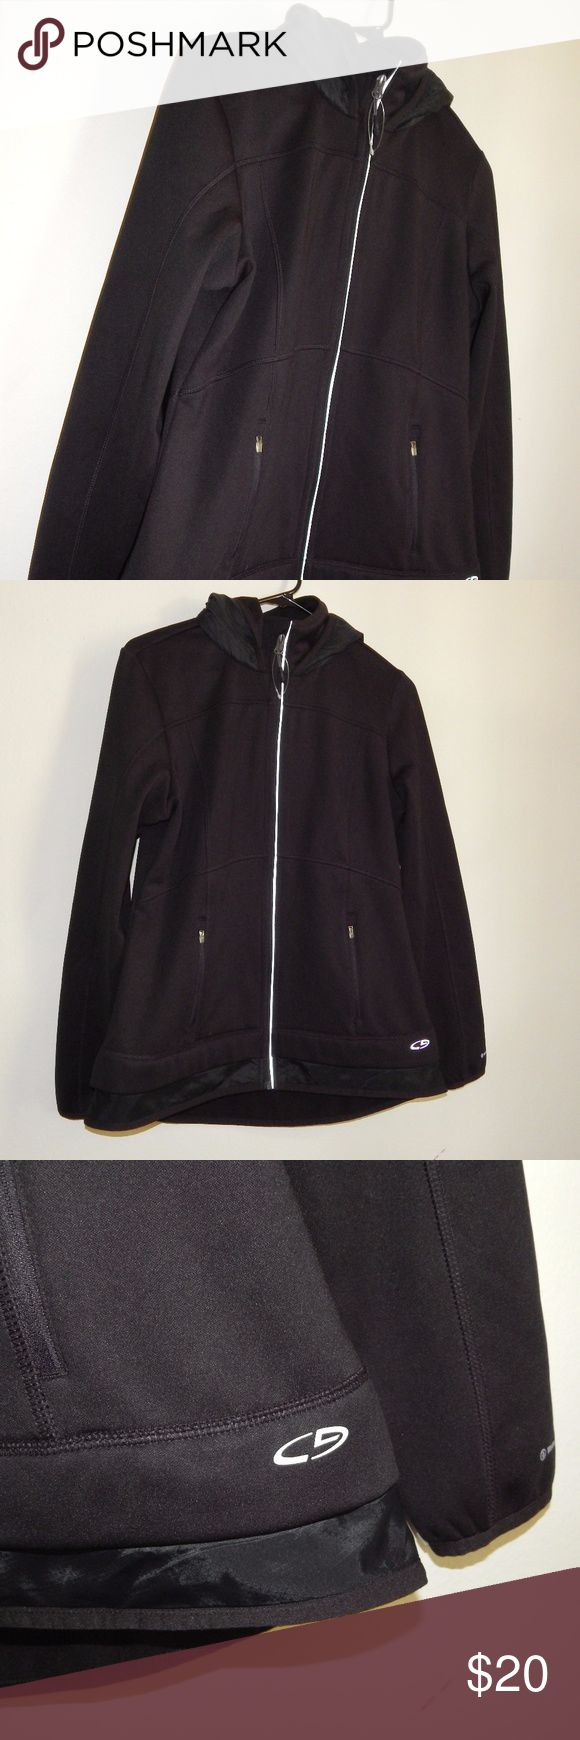 NWOT C9 by Champion Duo Dry Women's Black Hooded P NWOT C9 by Champion Duo Dry Women's Black Hooded Performance/ Athletic Jacket M Medium. This jacket is in excellent condition and has never been worn. New without tag. No stain, rips or damage.  Length:25.5 in  Sleeve: 25 in  Chest:19.5 in Champion Jackets & Coats